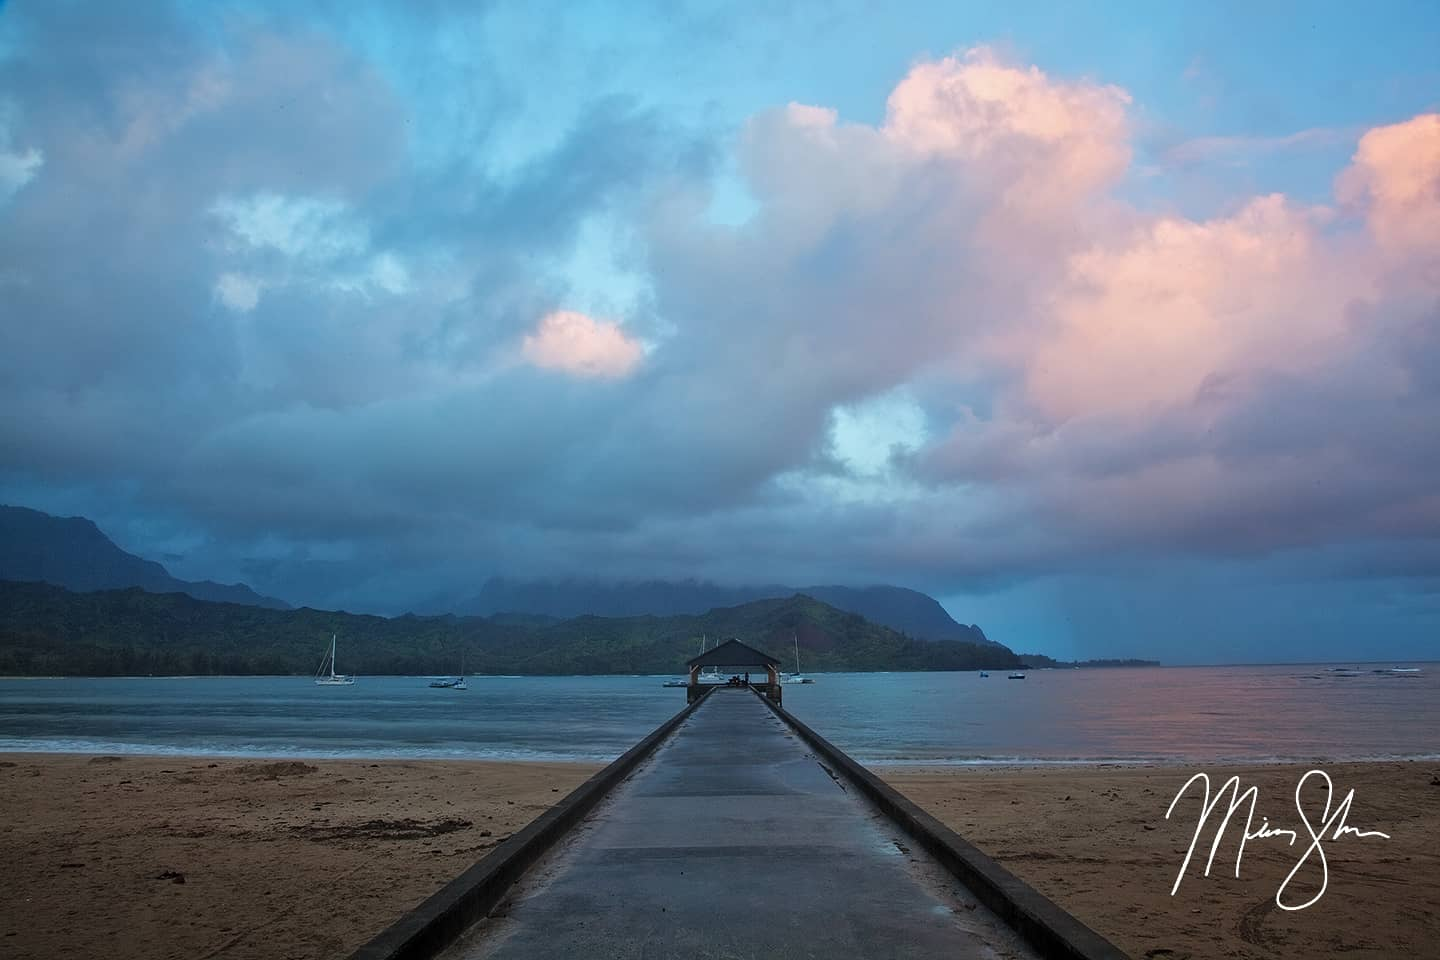 Down the Pier at Hanalei Bay